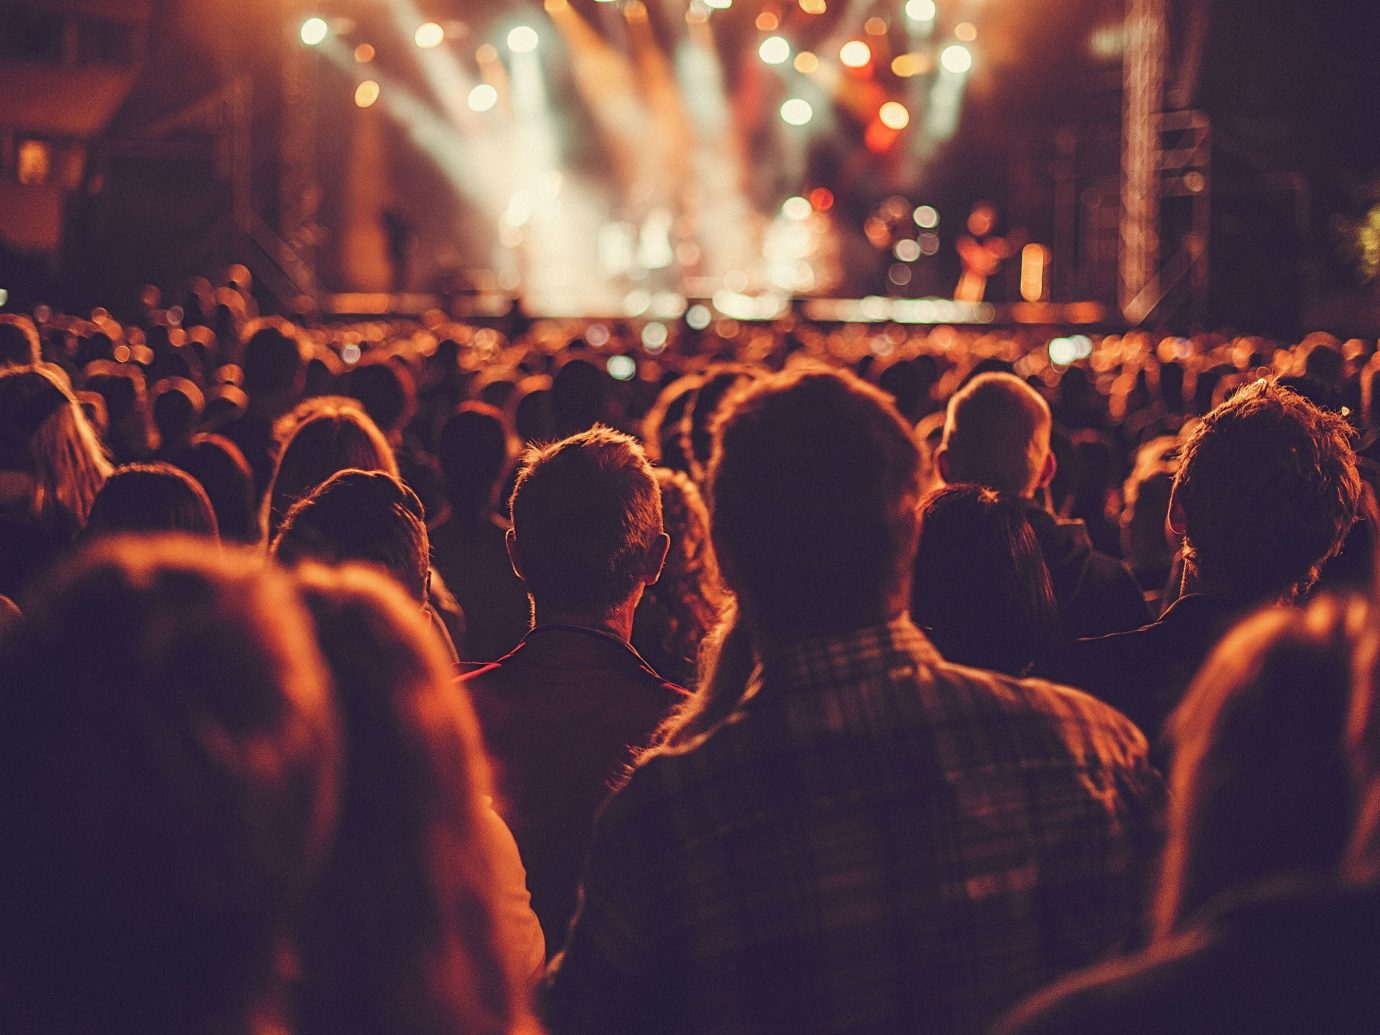 Summer Series crowd performance rock concert person concert performing arts dark Entertainment stage darkness audience light group people watching